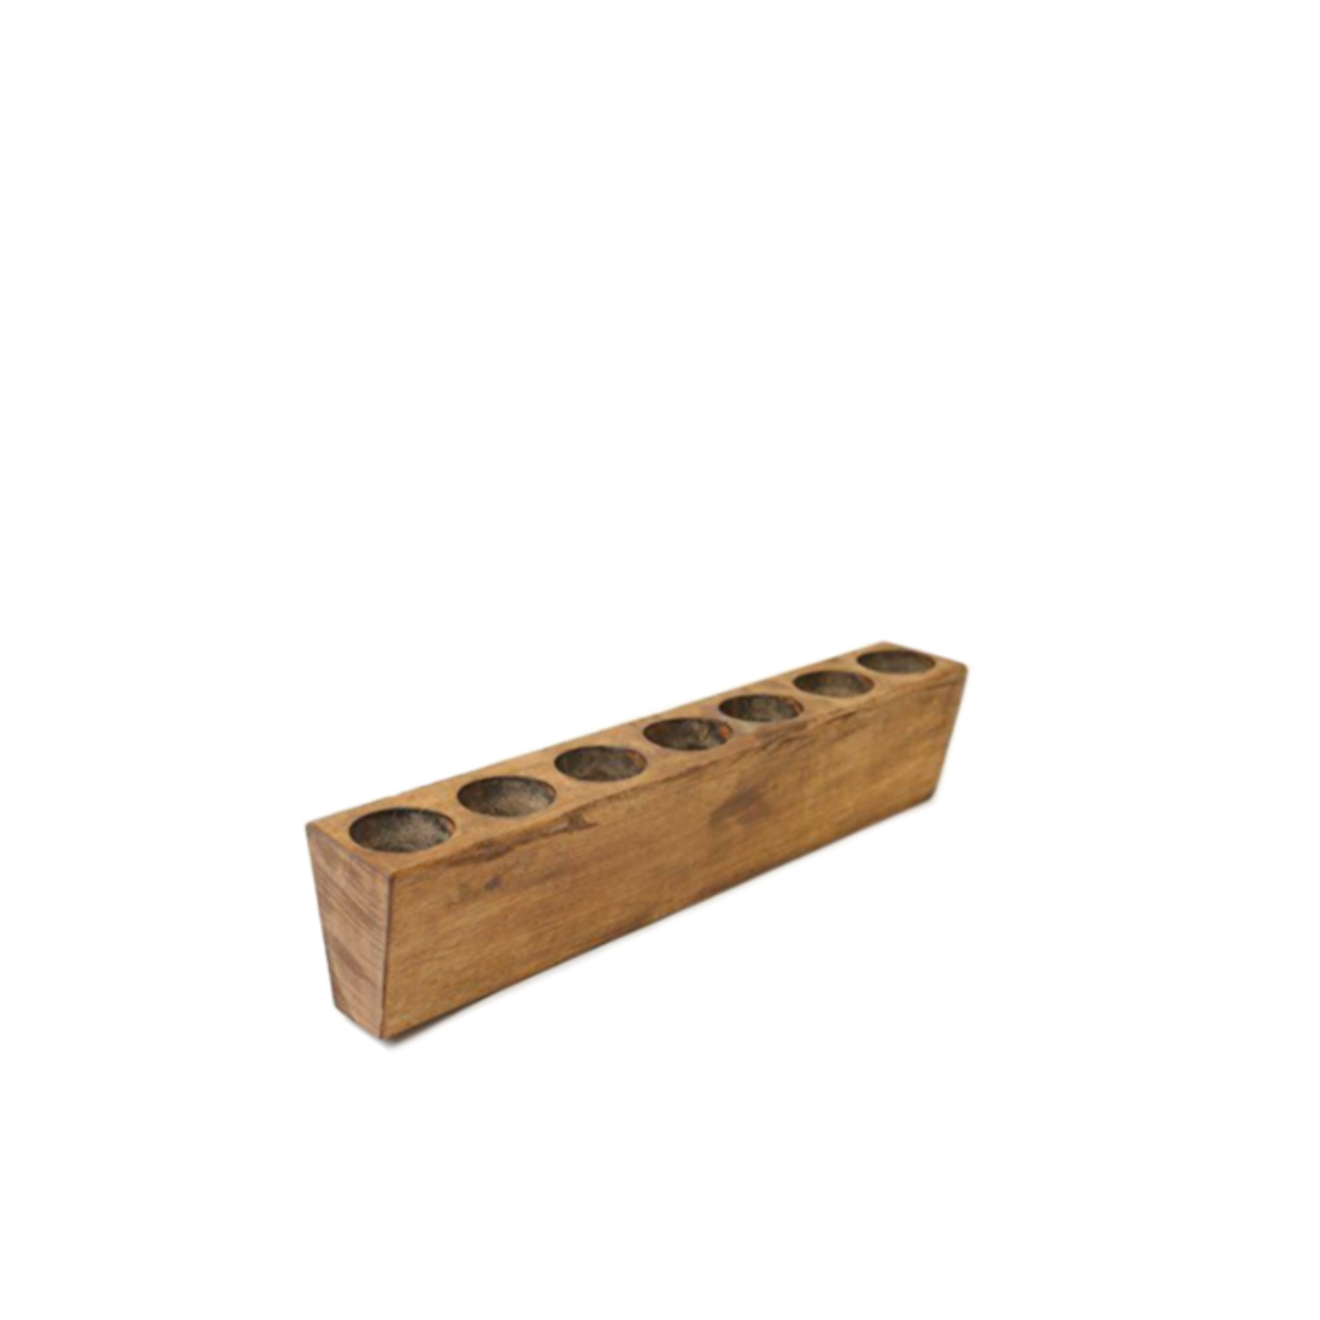 wood candle molder.png